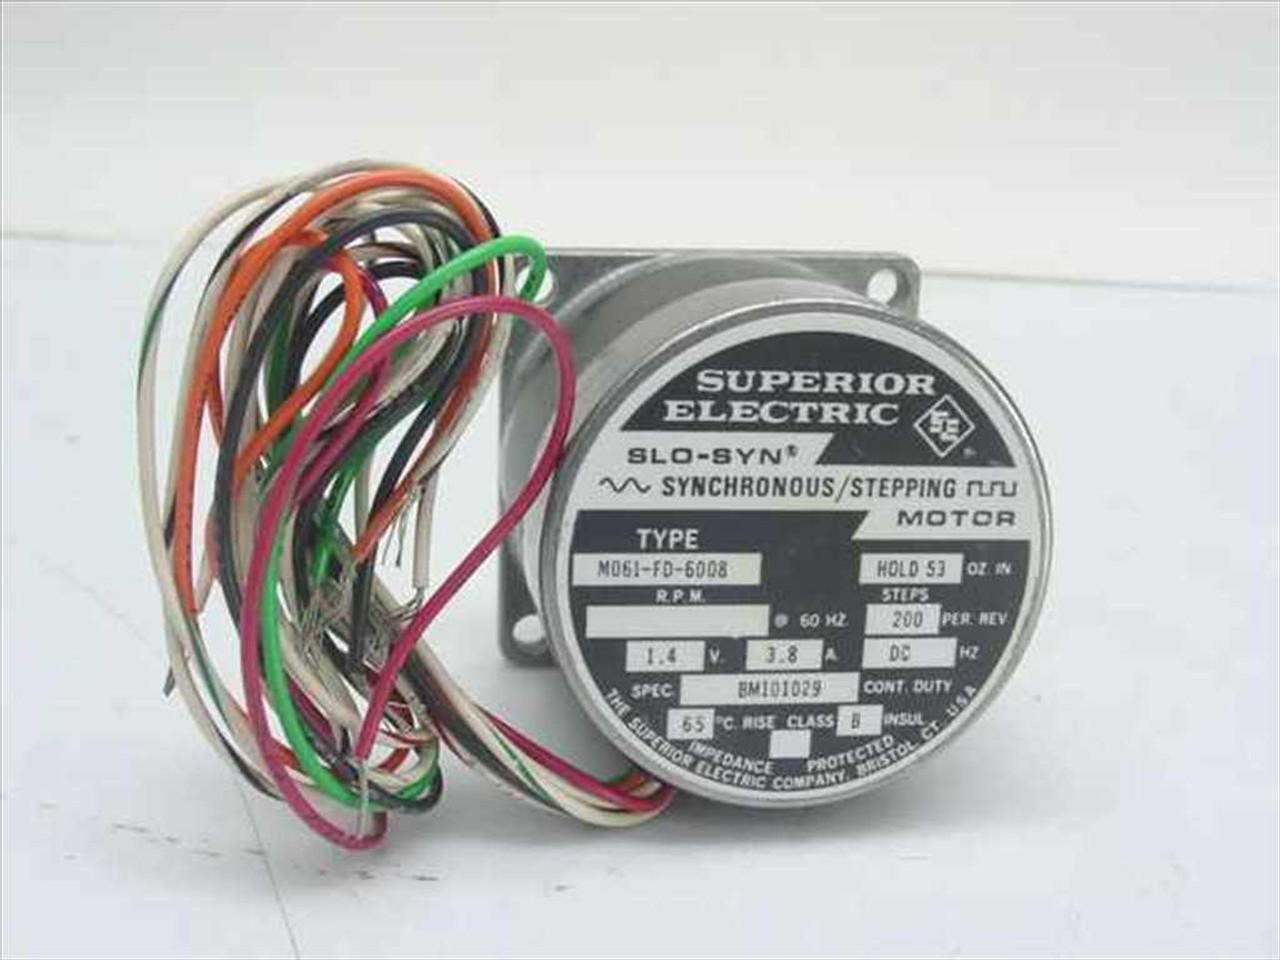 Superior electric mo61 fd 6008 slo syn synchronous for Superior electric slo syn motor